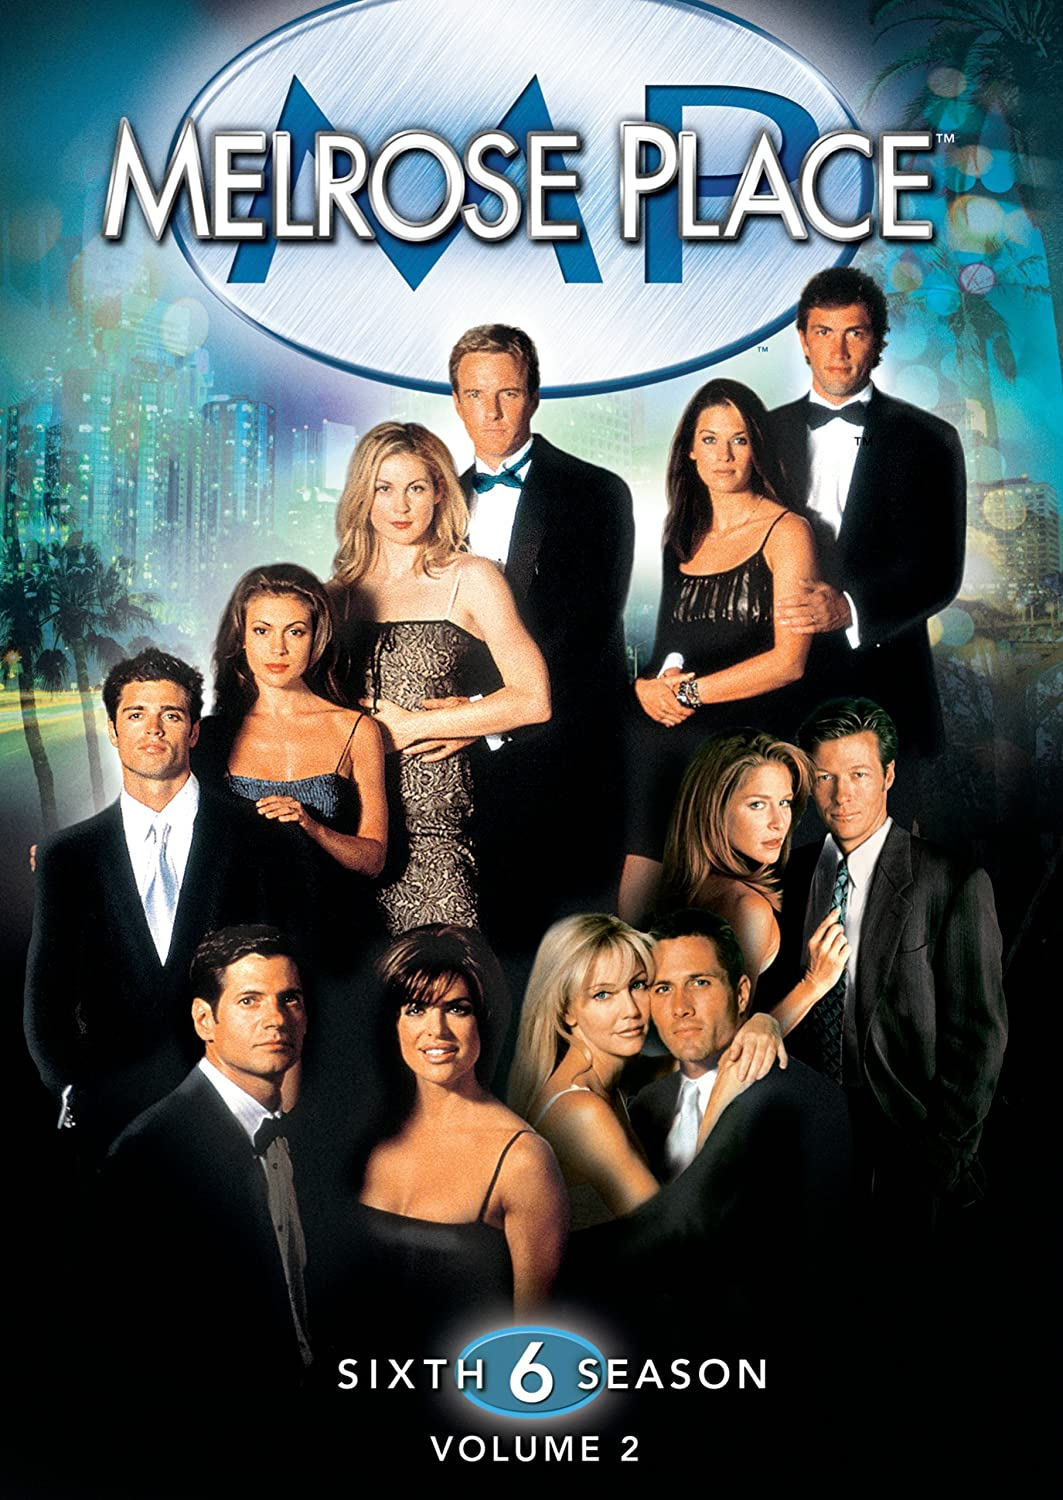 Melrose Place Original Melrose Place Season 6 Vol